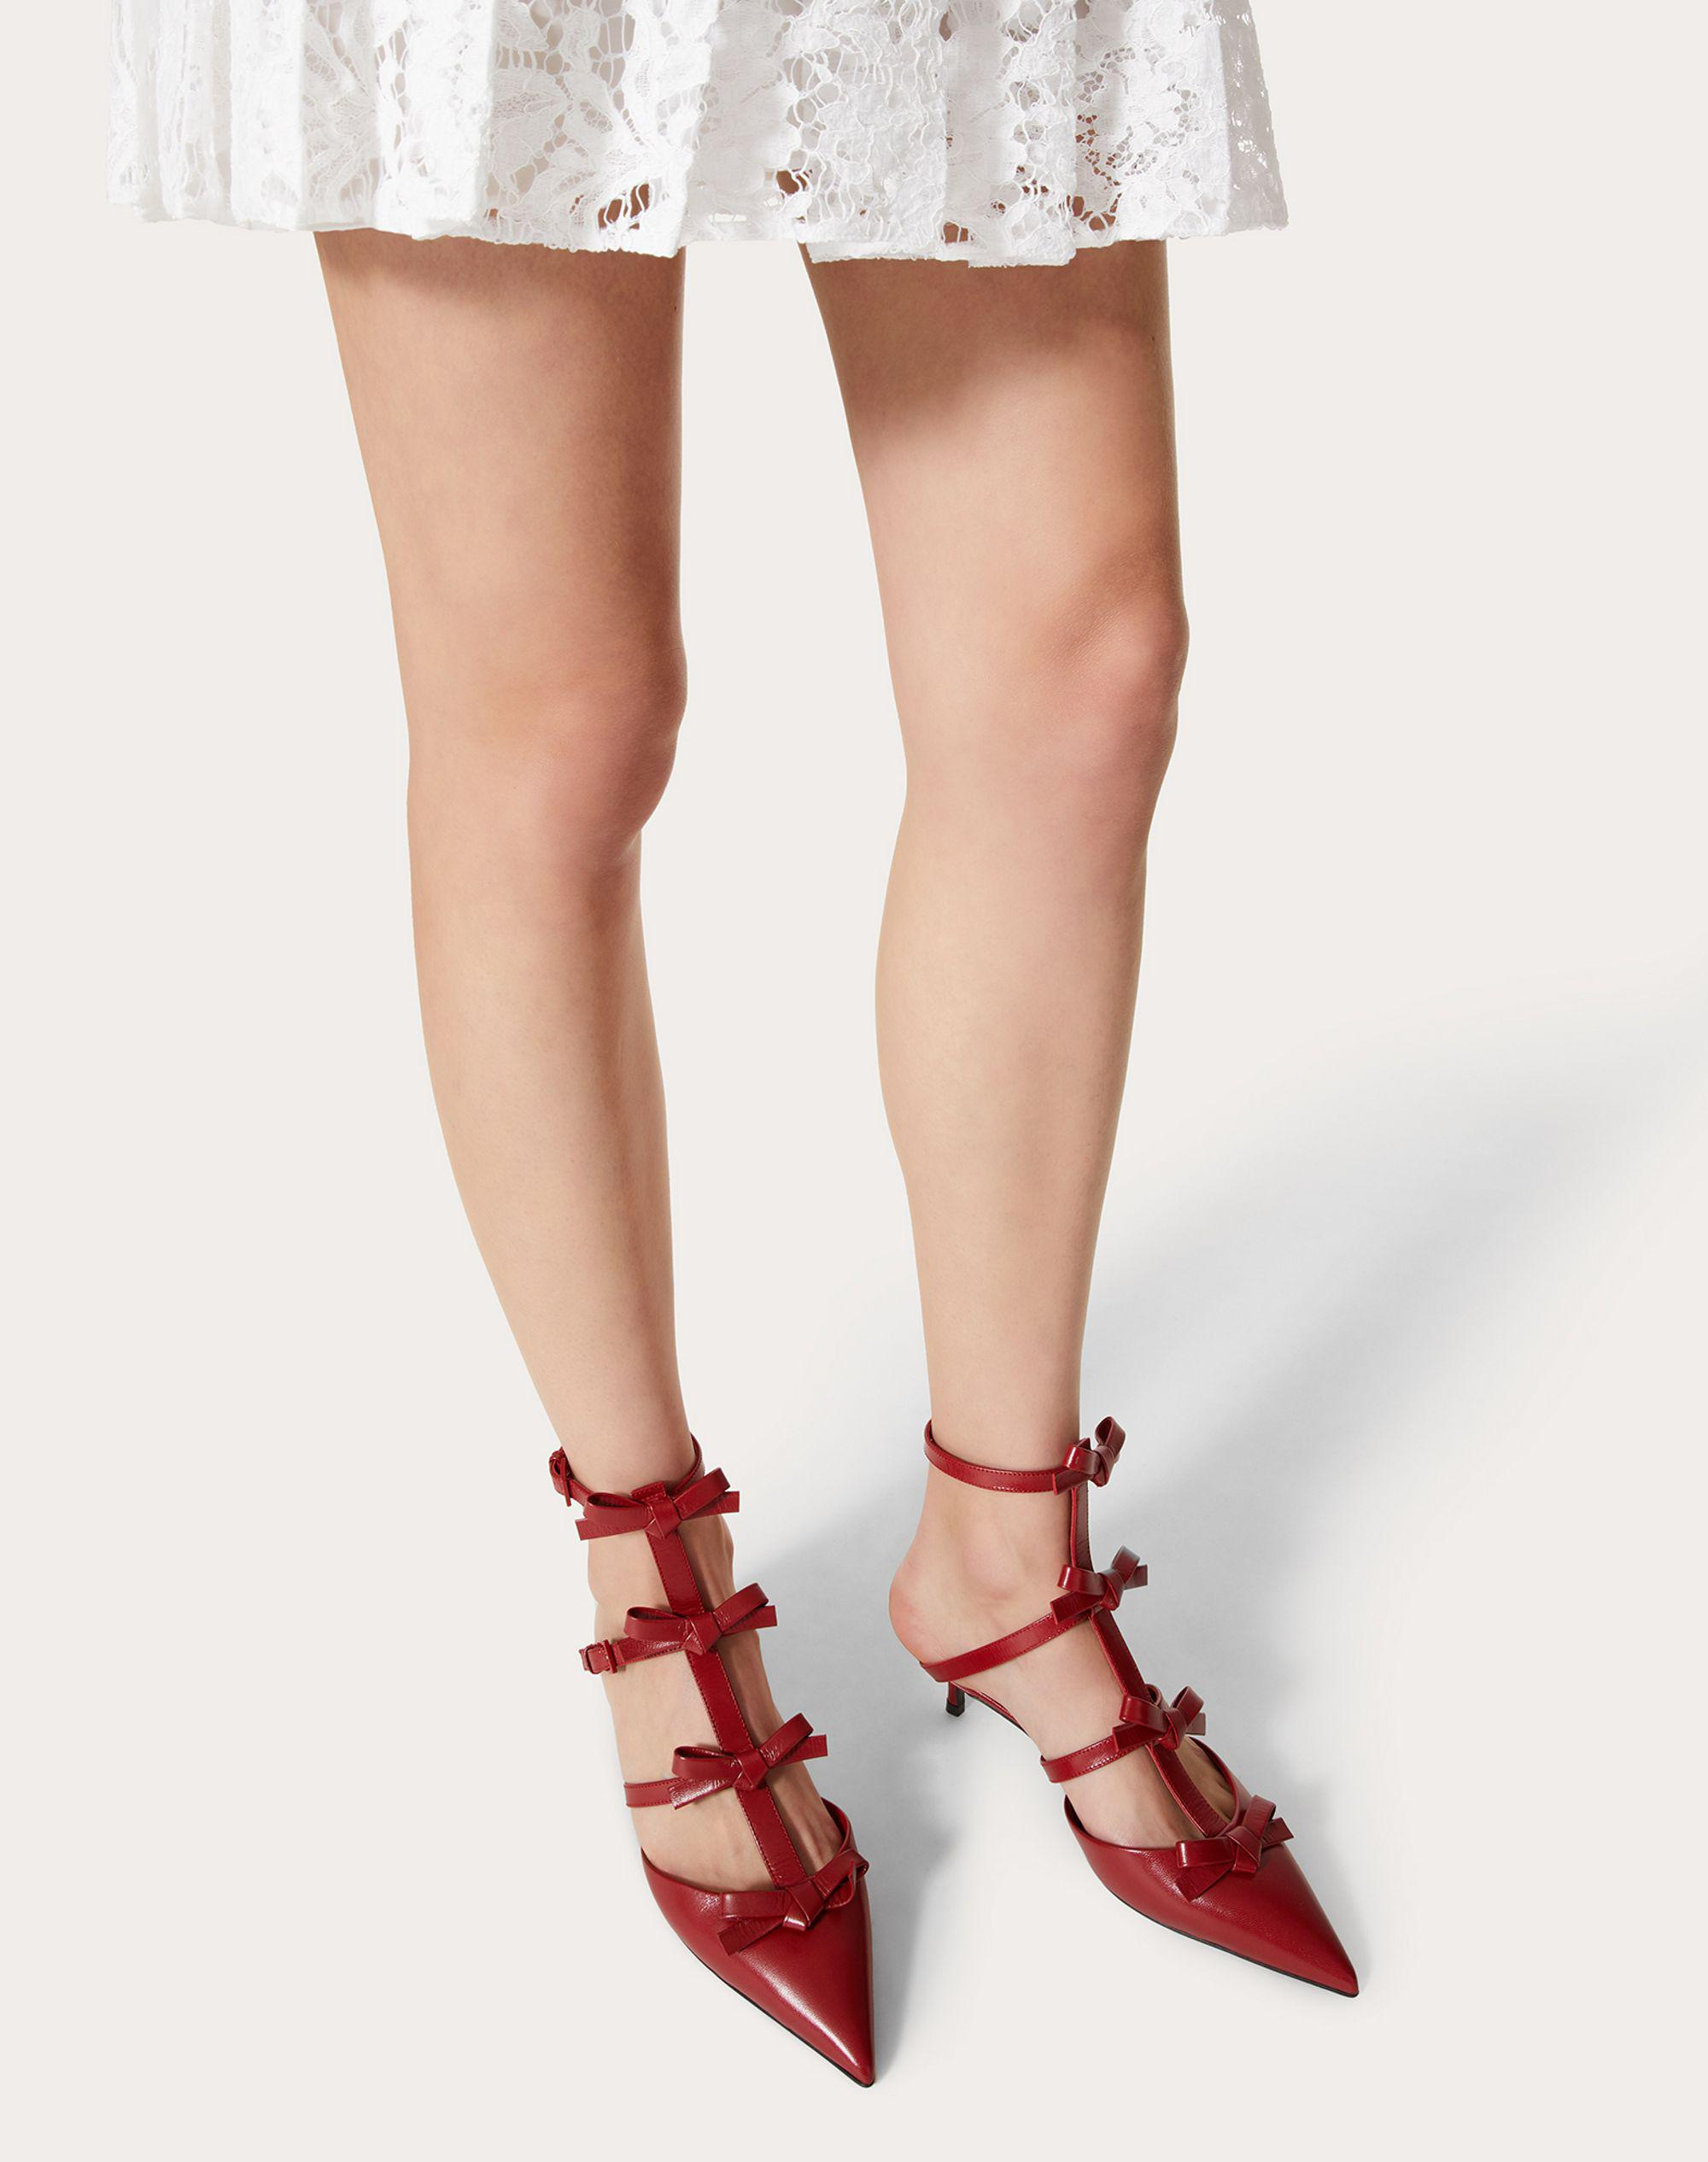 ANKLE STRAP PUMP WITH KIDSKIN FRENCH BOWS  40 MM 5